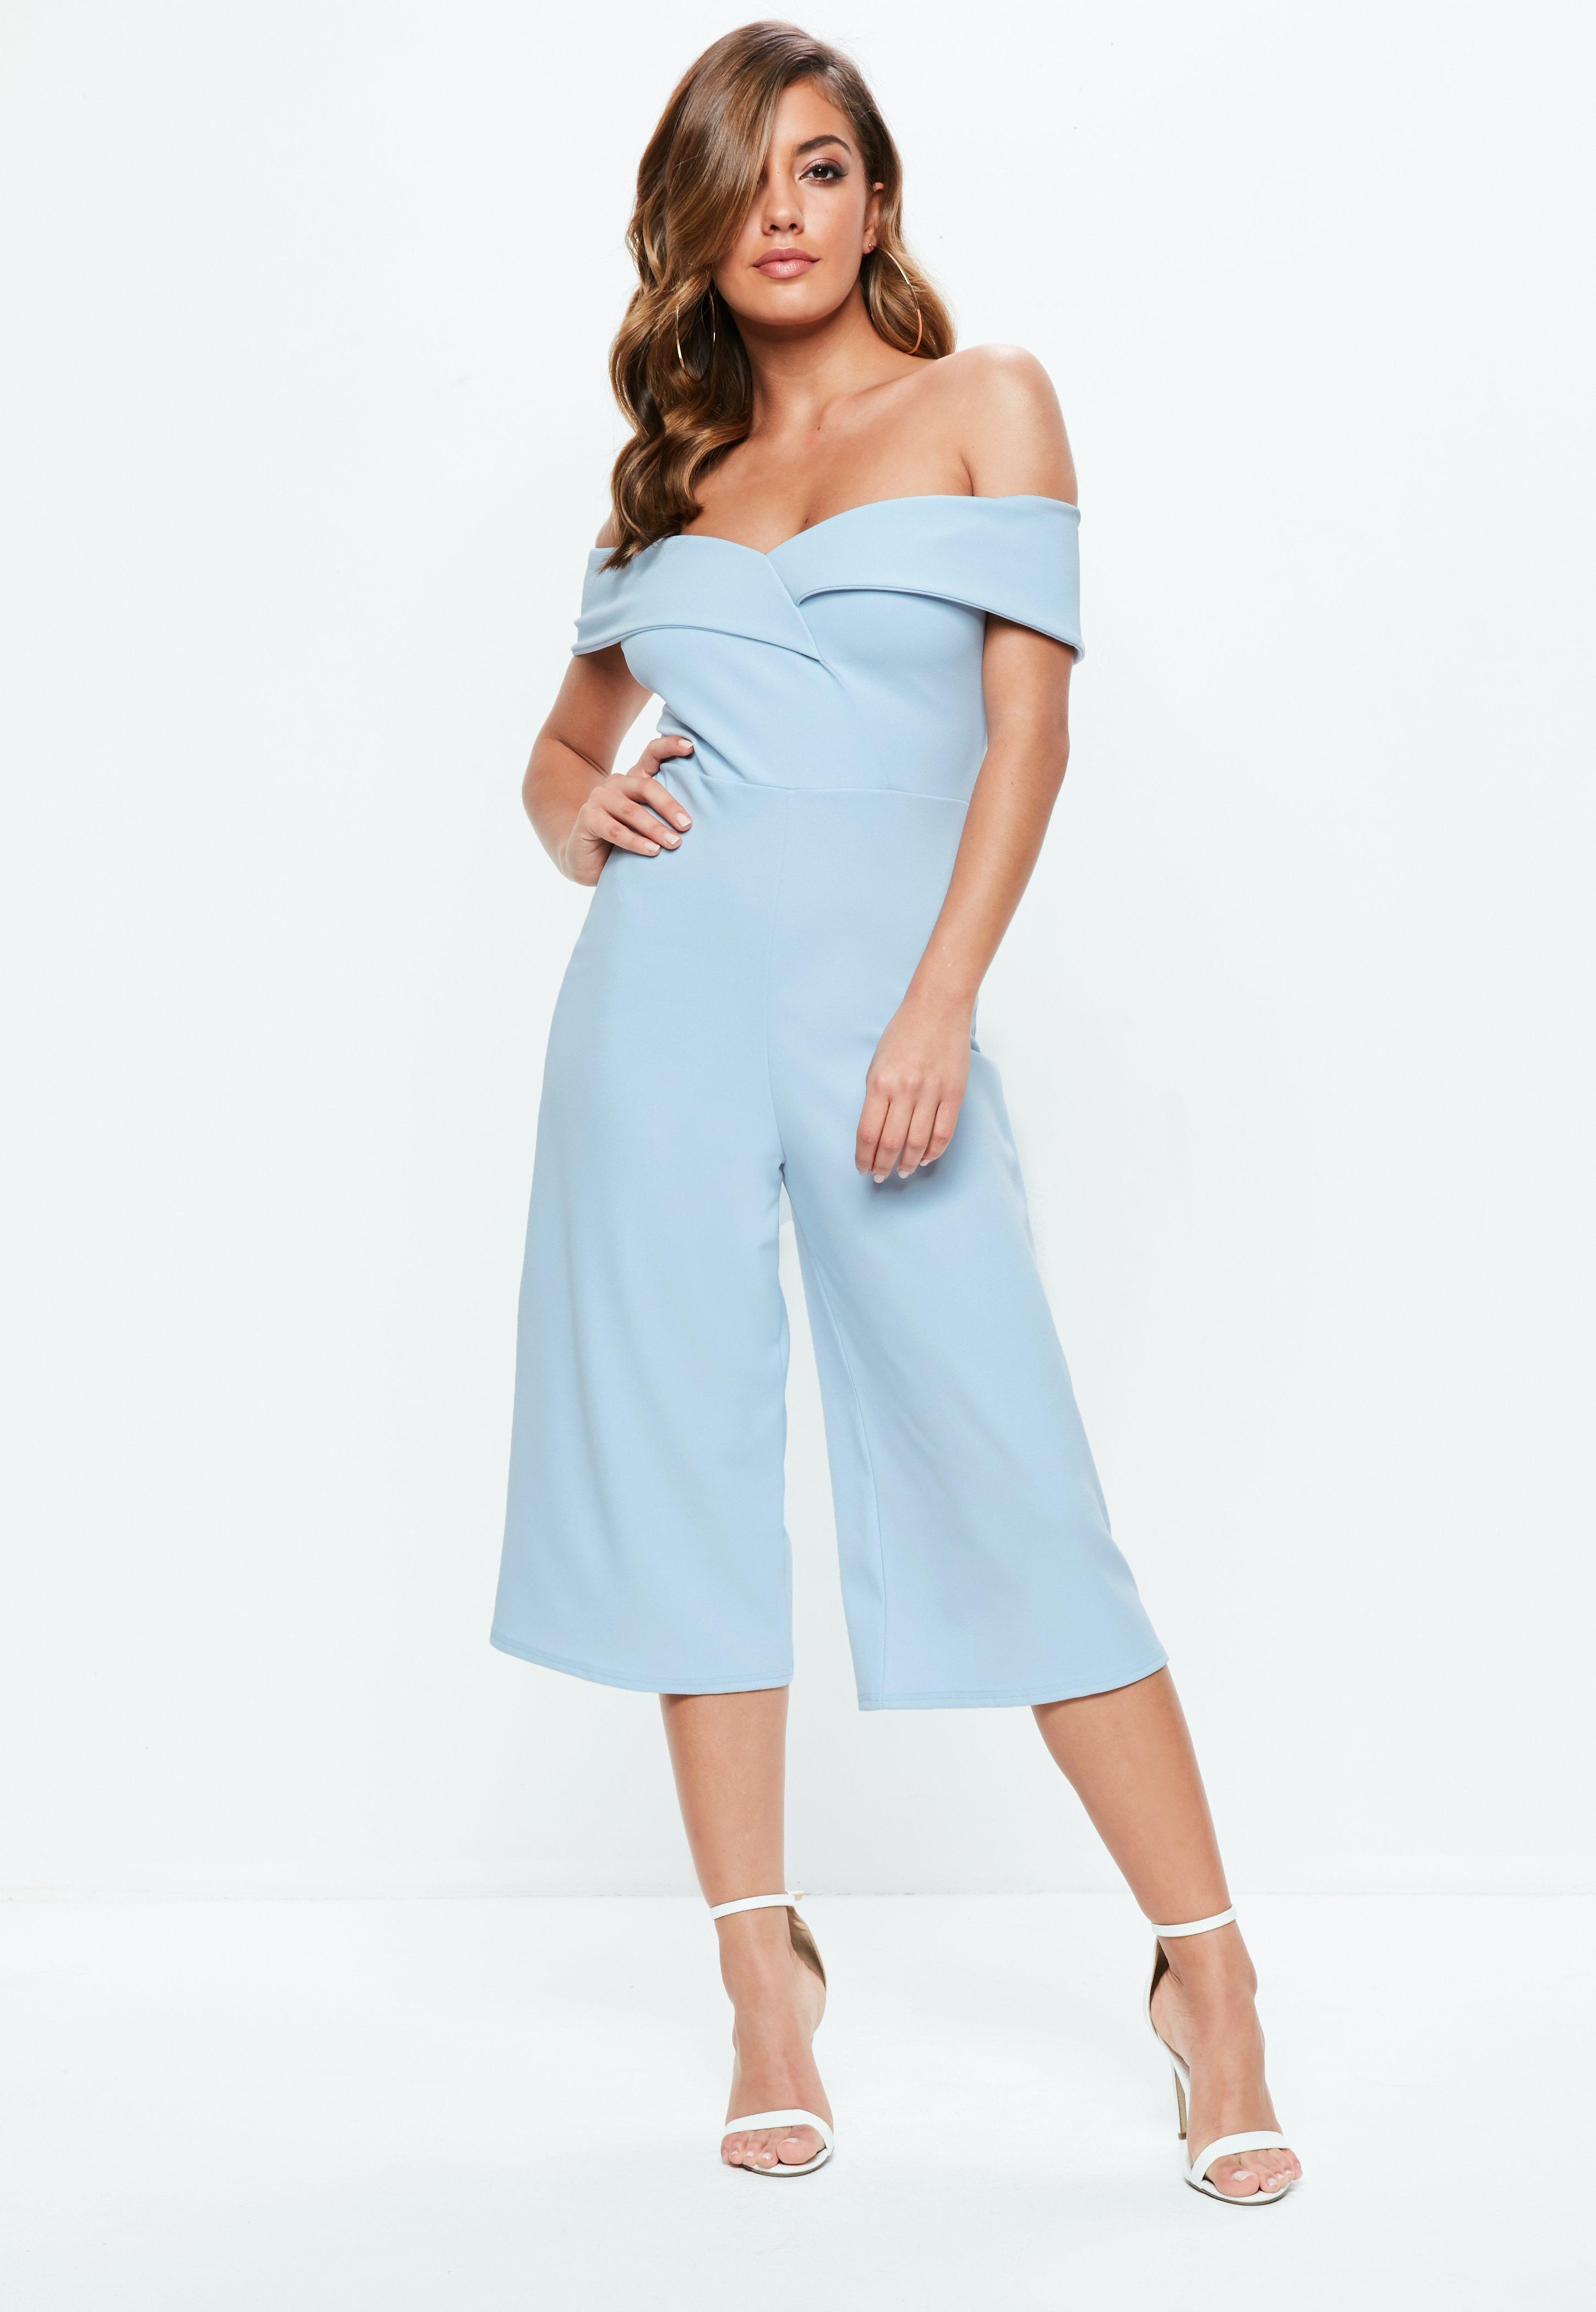 ddef6633117 Culotte Jumpsuits - Women s Cropped Jumpsuits